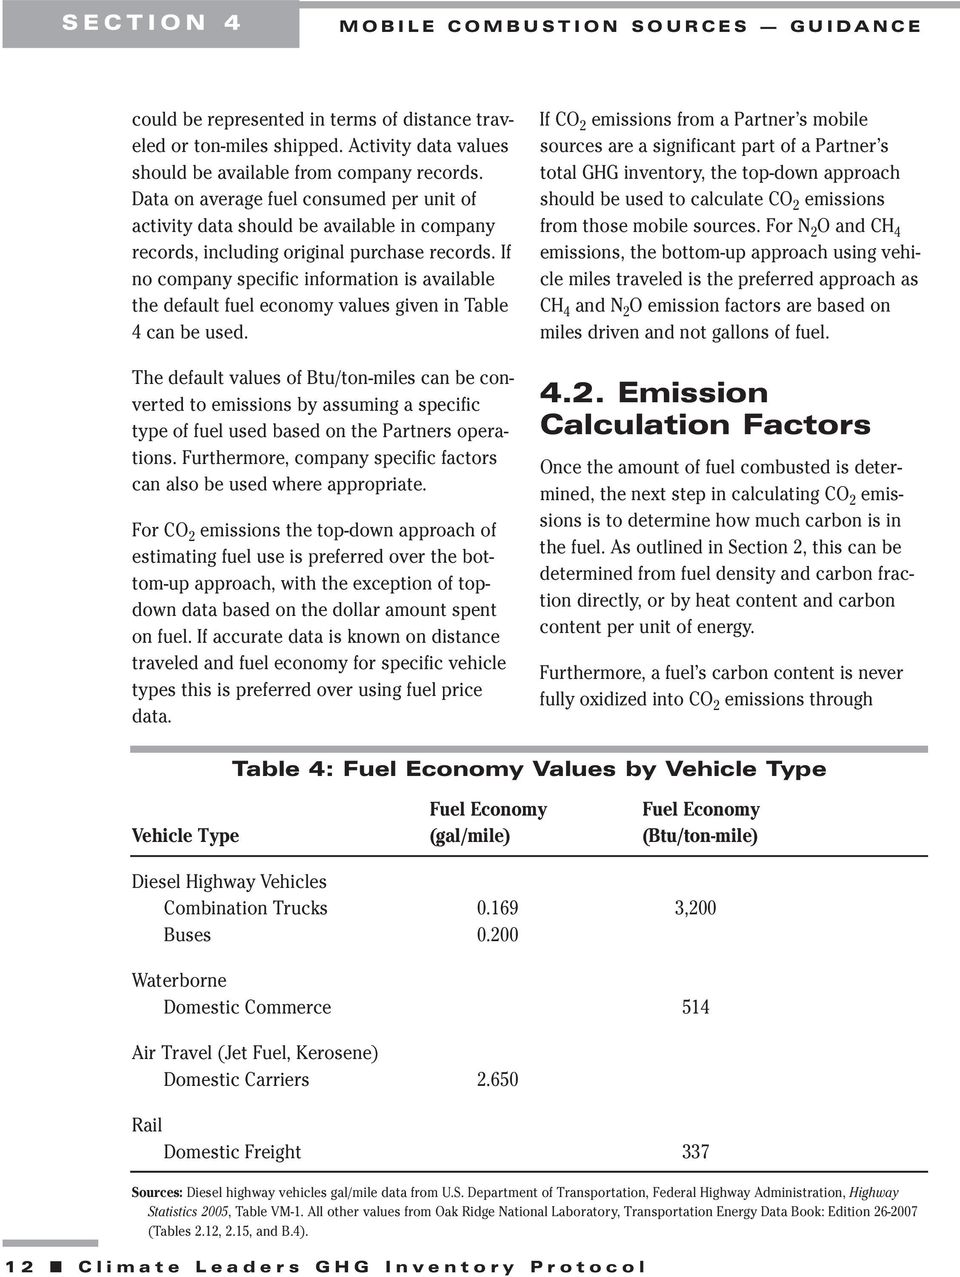 If no company specific information is available the default fuel economy values given in Table 4 can be used.